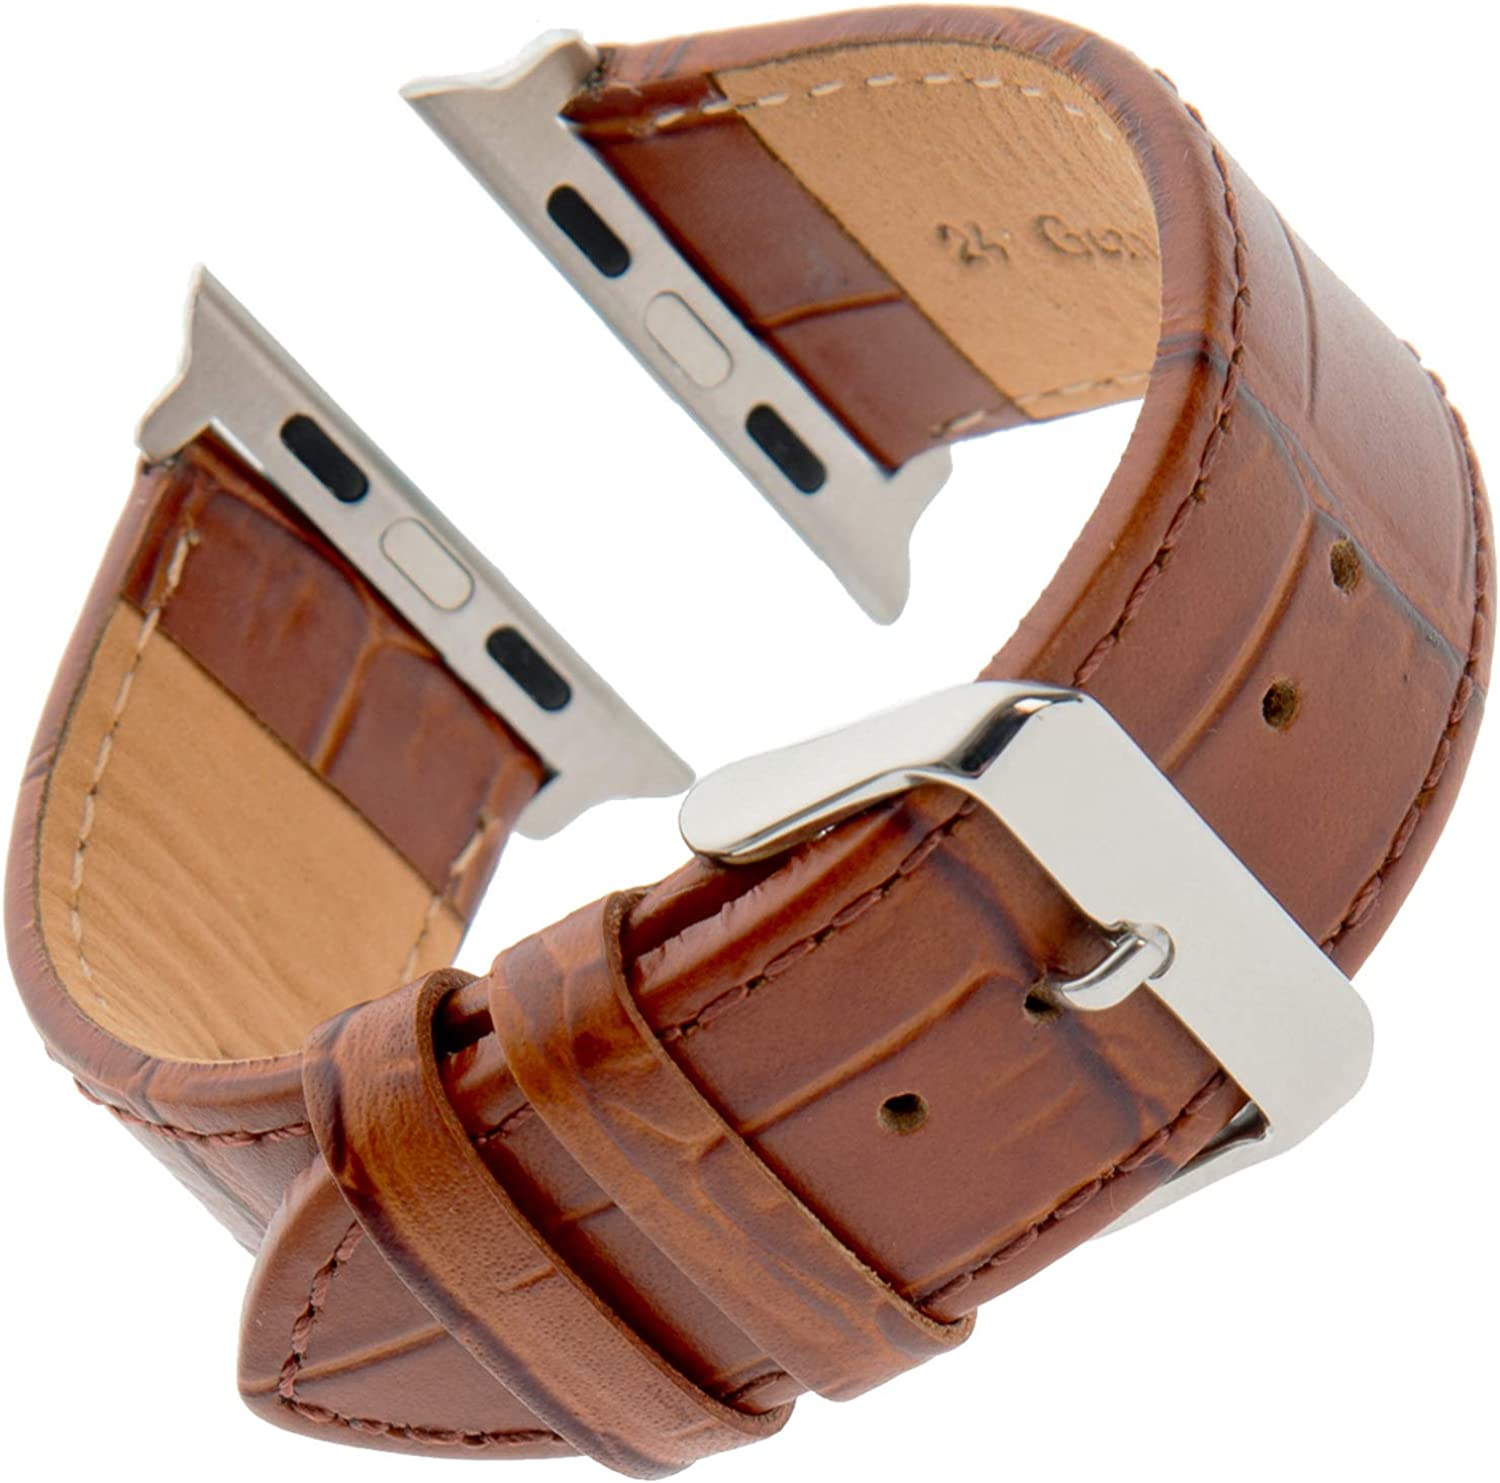 Gilden for Apple 38mm/40mm 42mm/44mm Gator-Grain Calfskin Leather Watch Strap F30-SMART